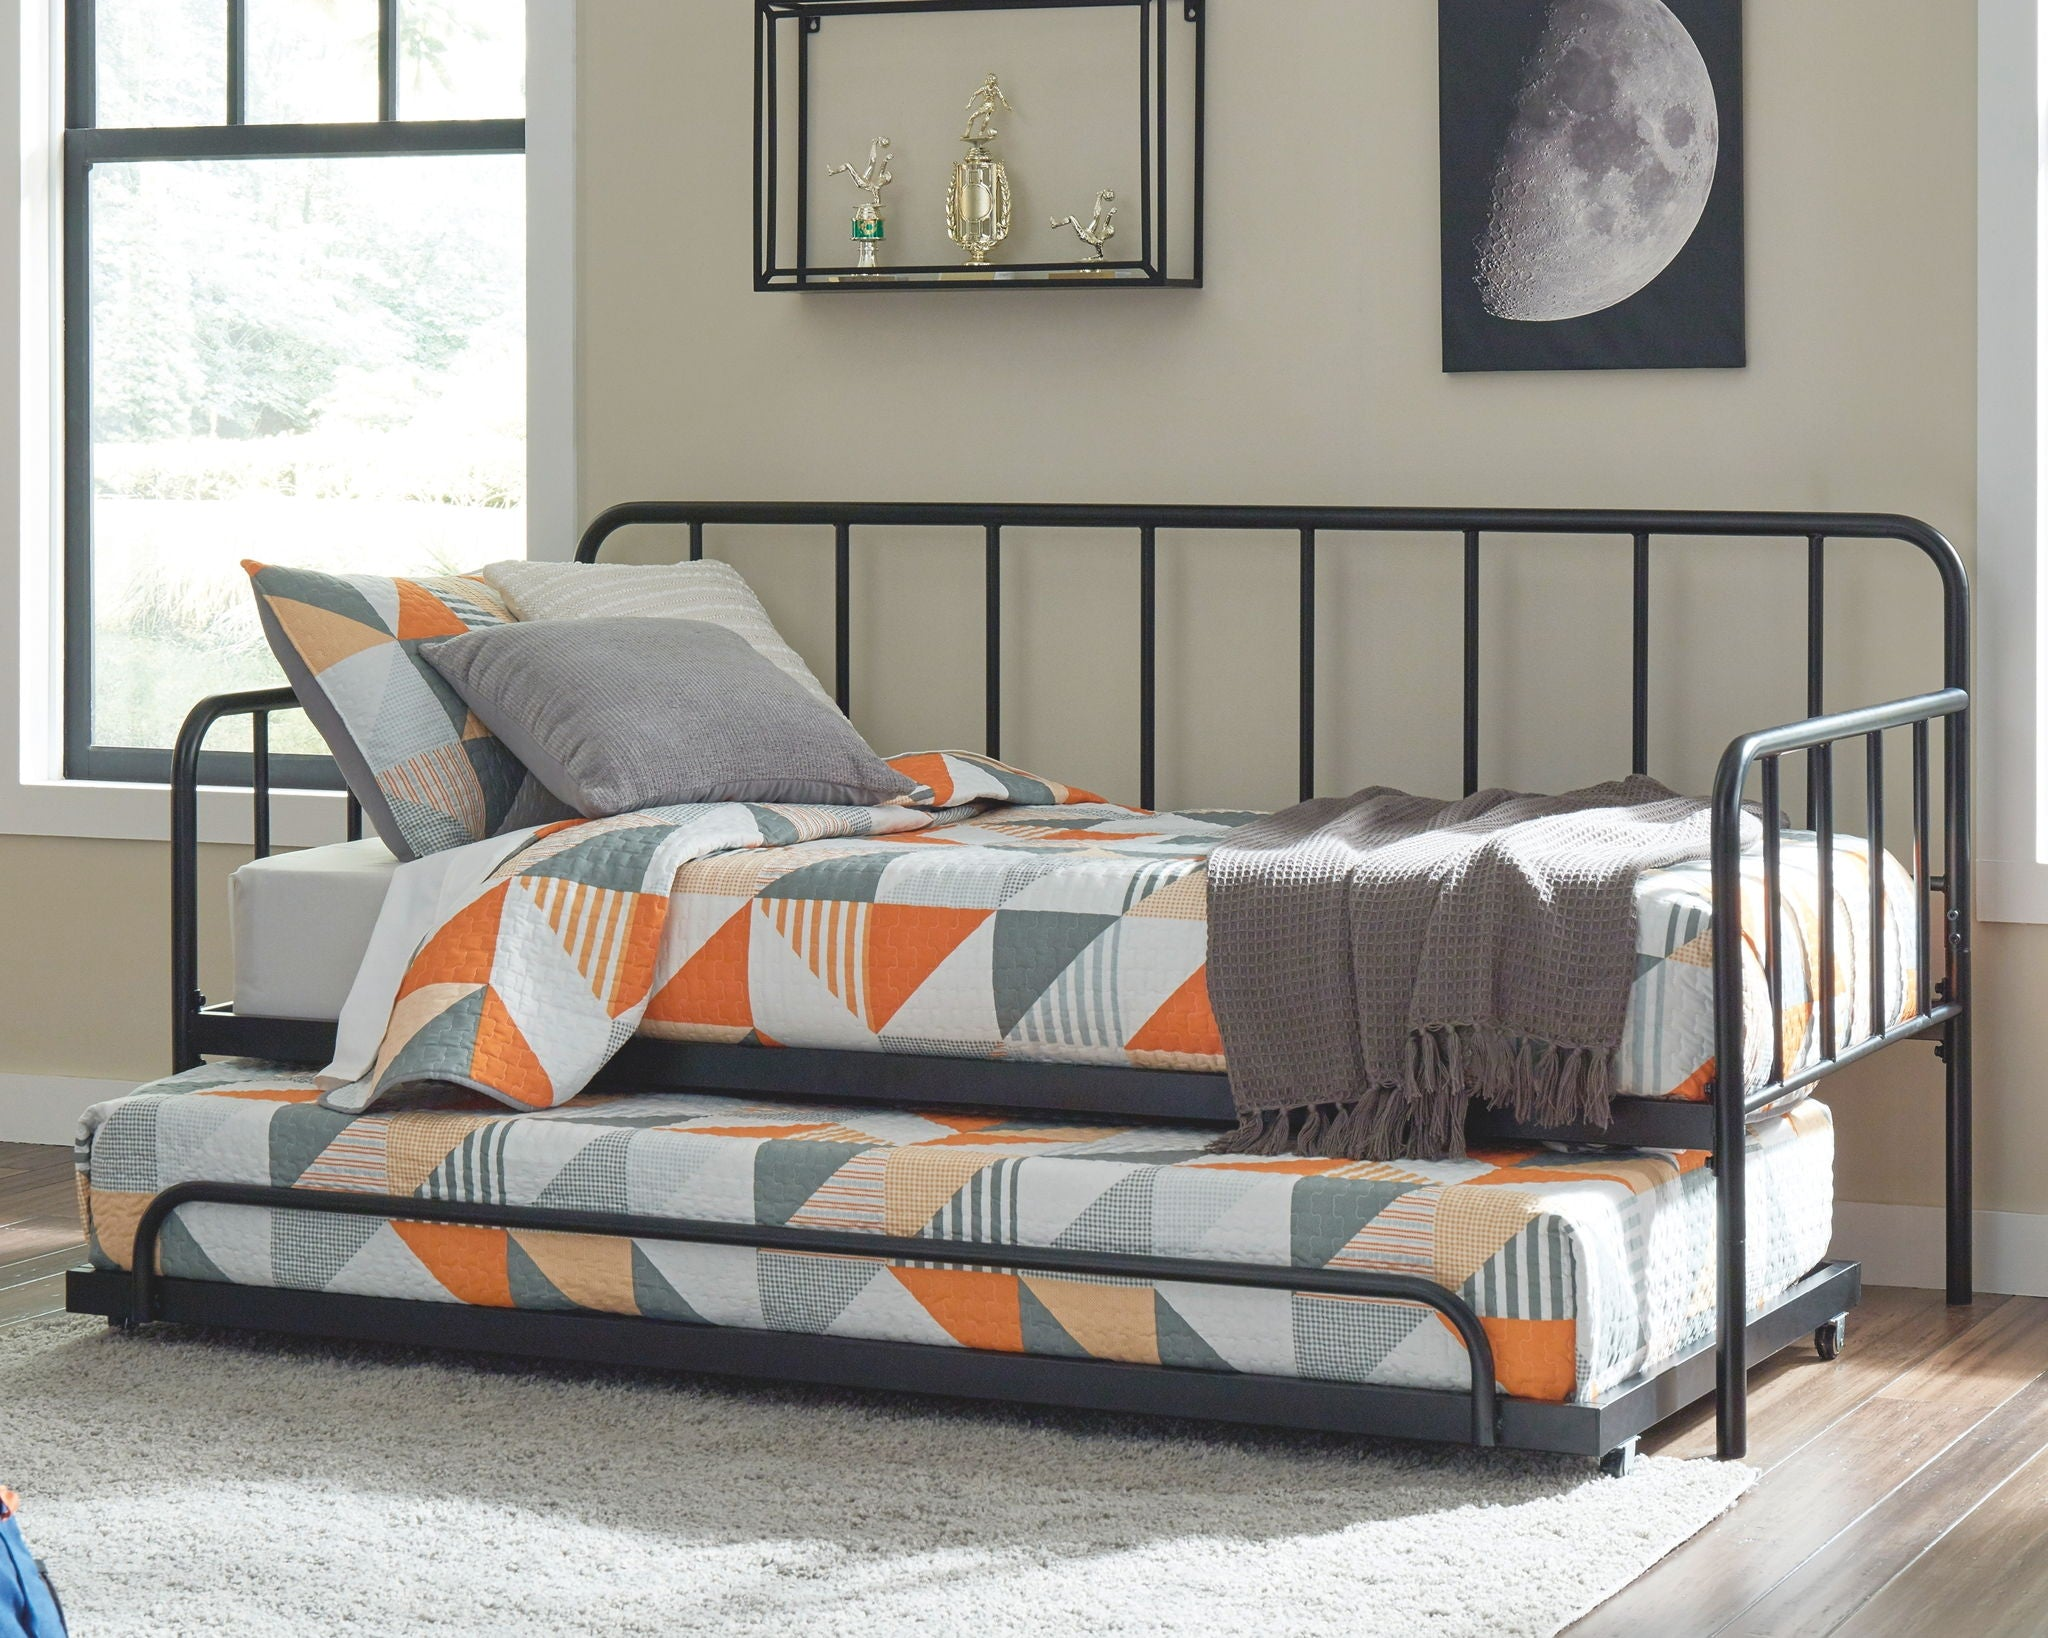 Trentlore Metal Day Bed with Platform